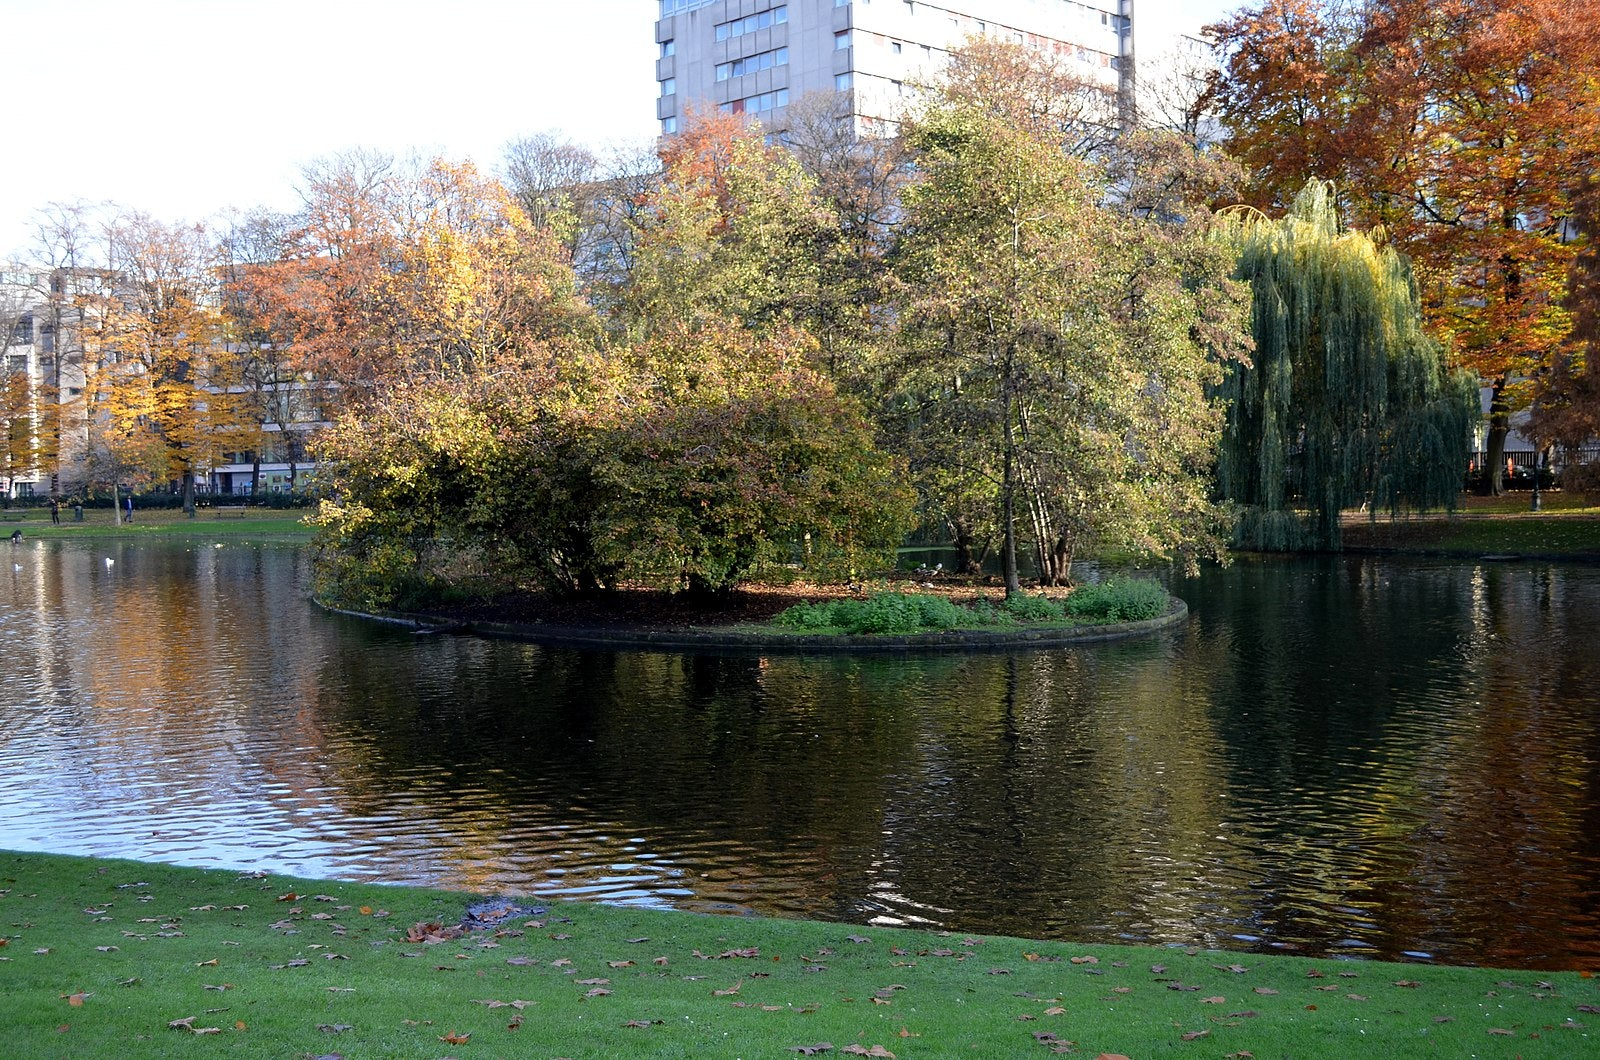 Brussels - Parc Leopold autumn trees and pond